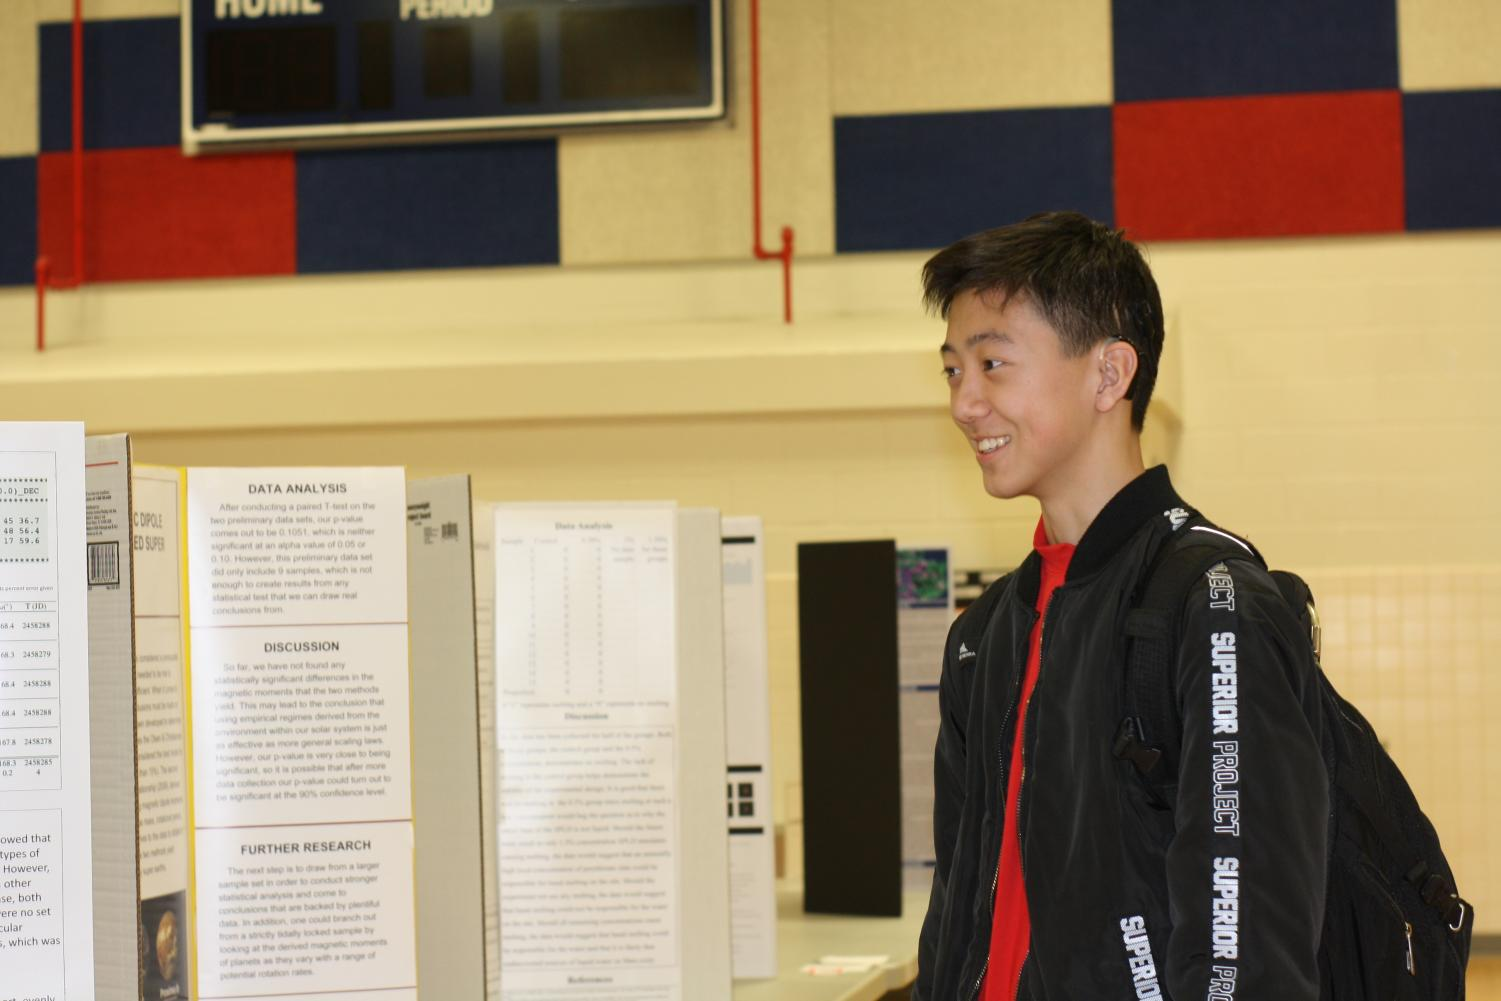 From+the+diagrams+and+data+analyses+to+the+discussions%2C+sophomore+Henry+Zhang+thoroughly+enjoys+the+projects+presented+at+the+fair.